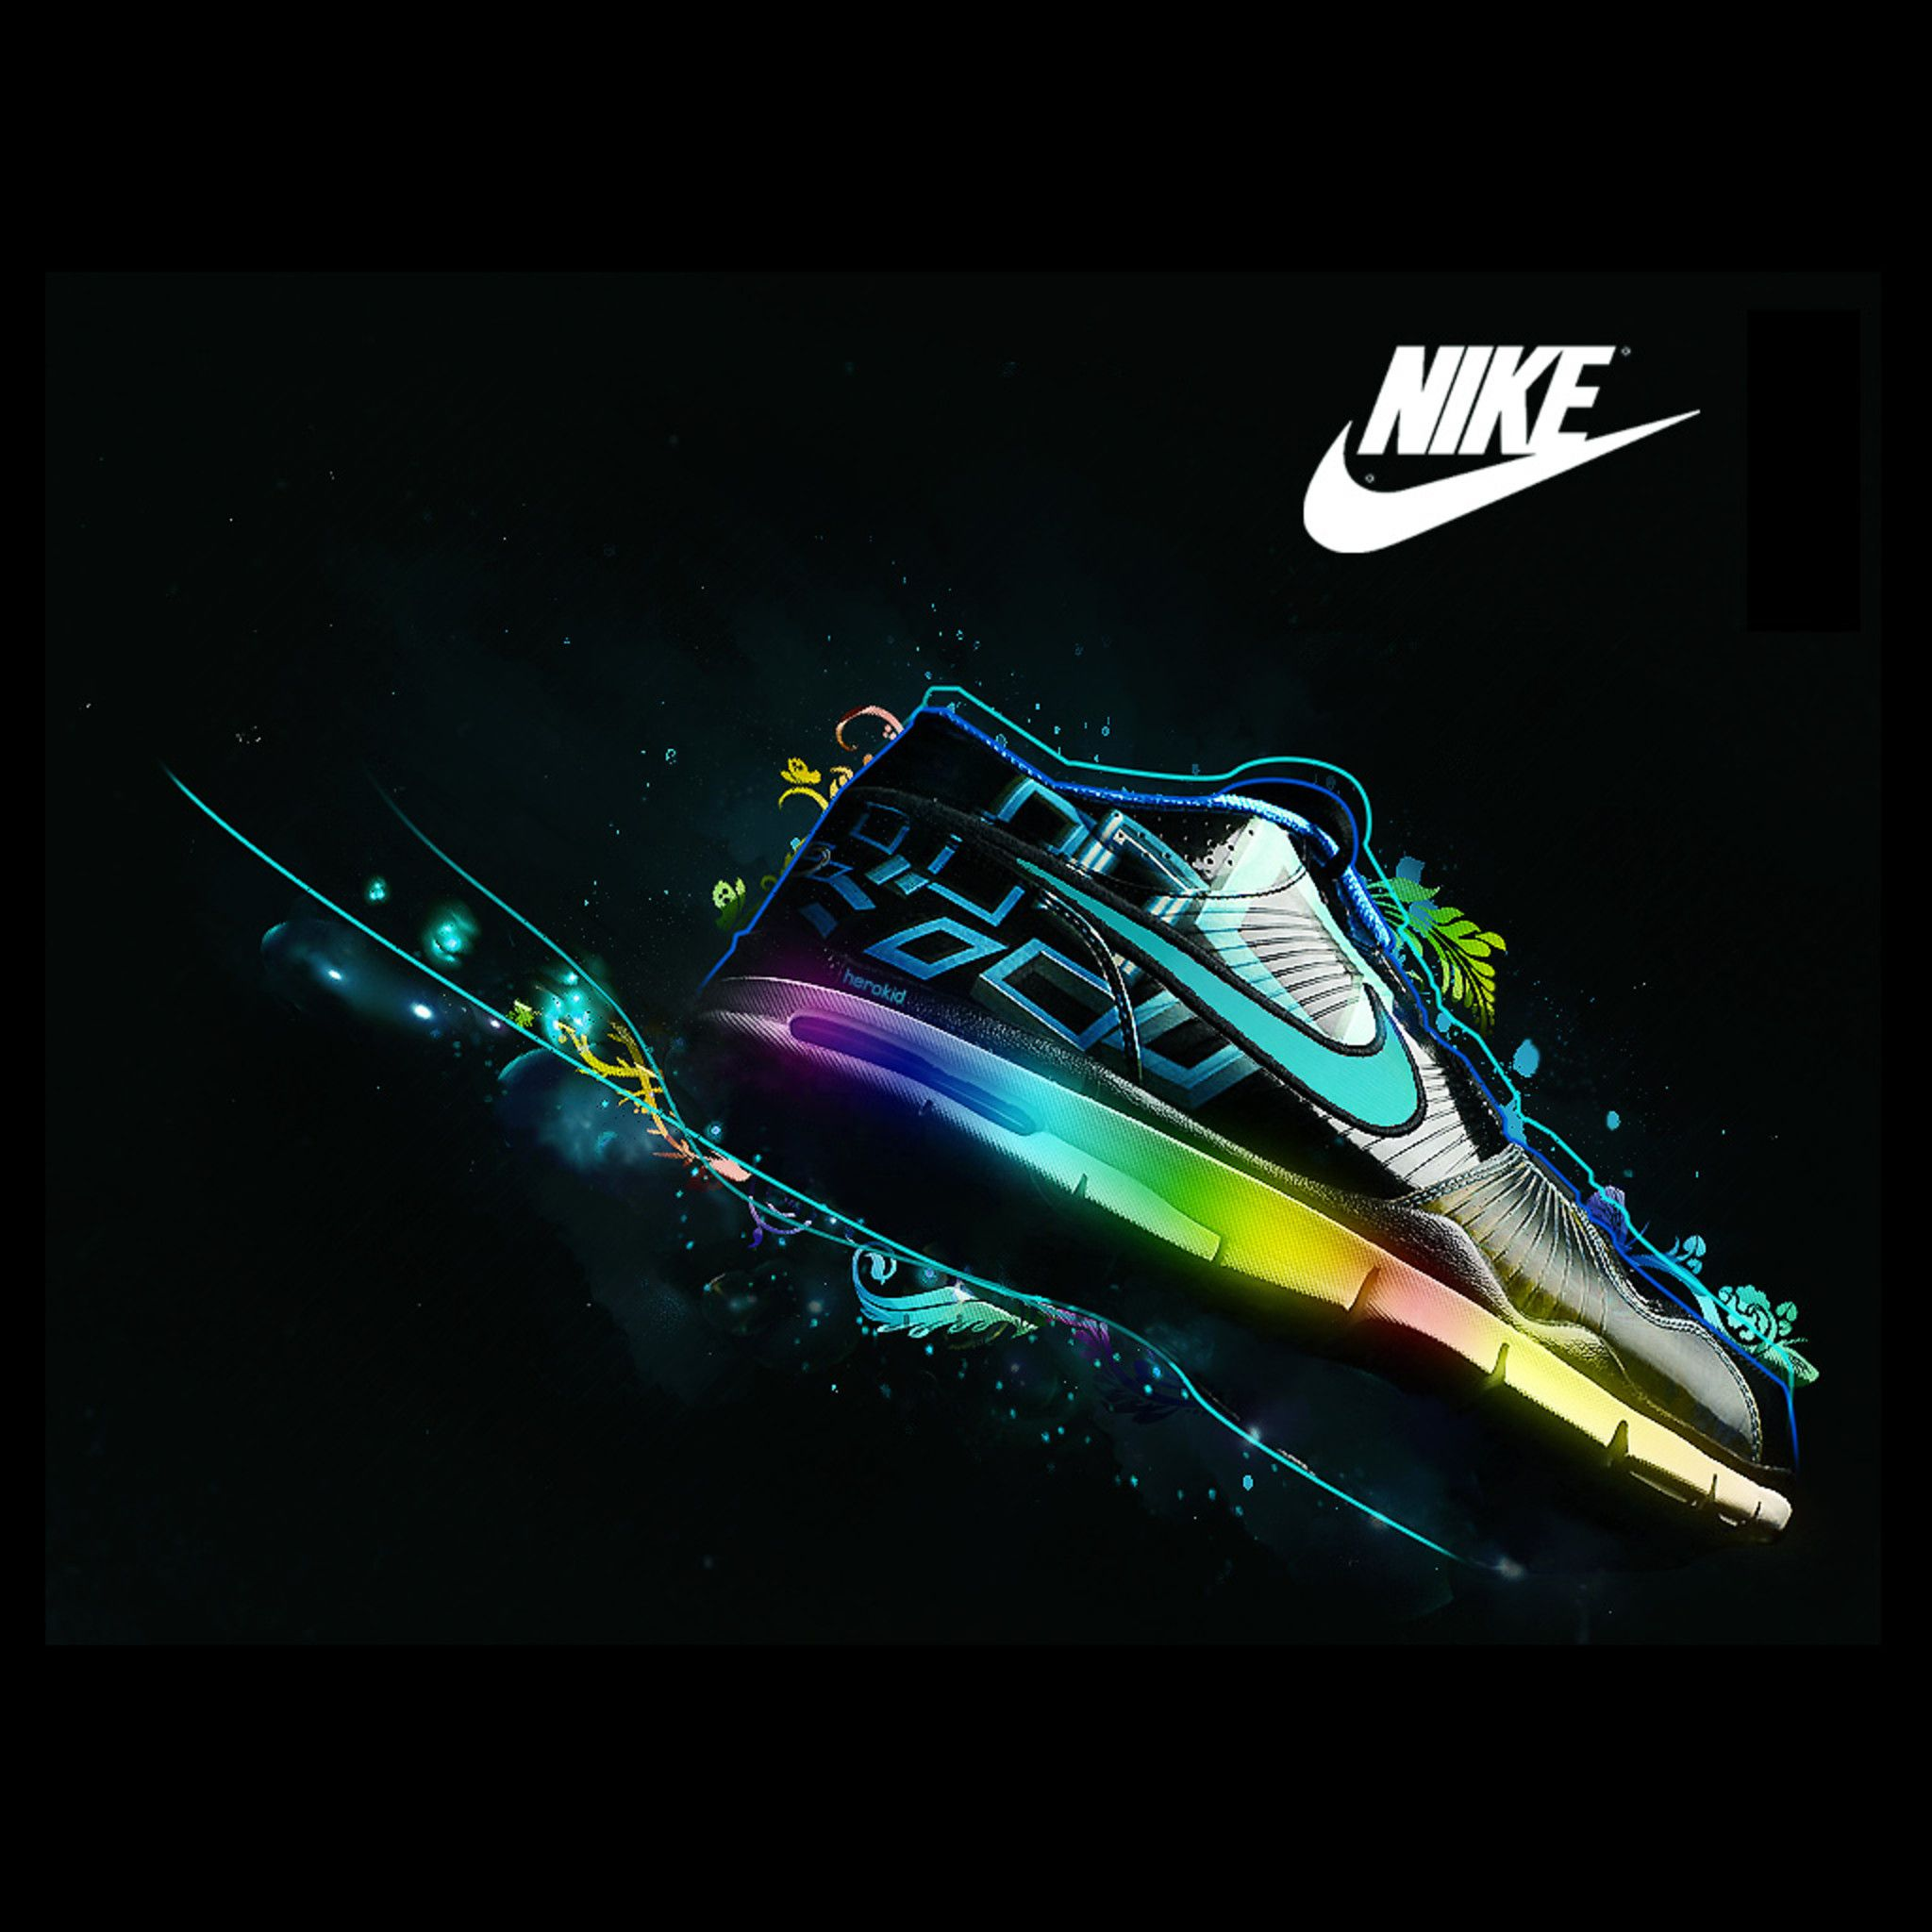 Wallpaper Of Nike Shoes